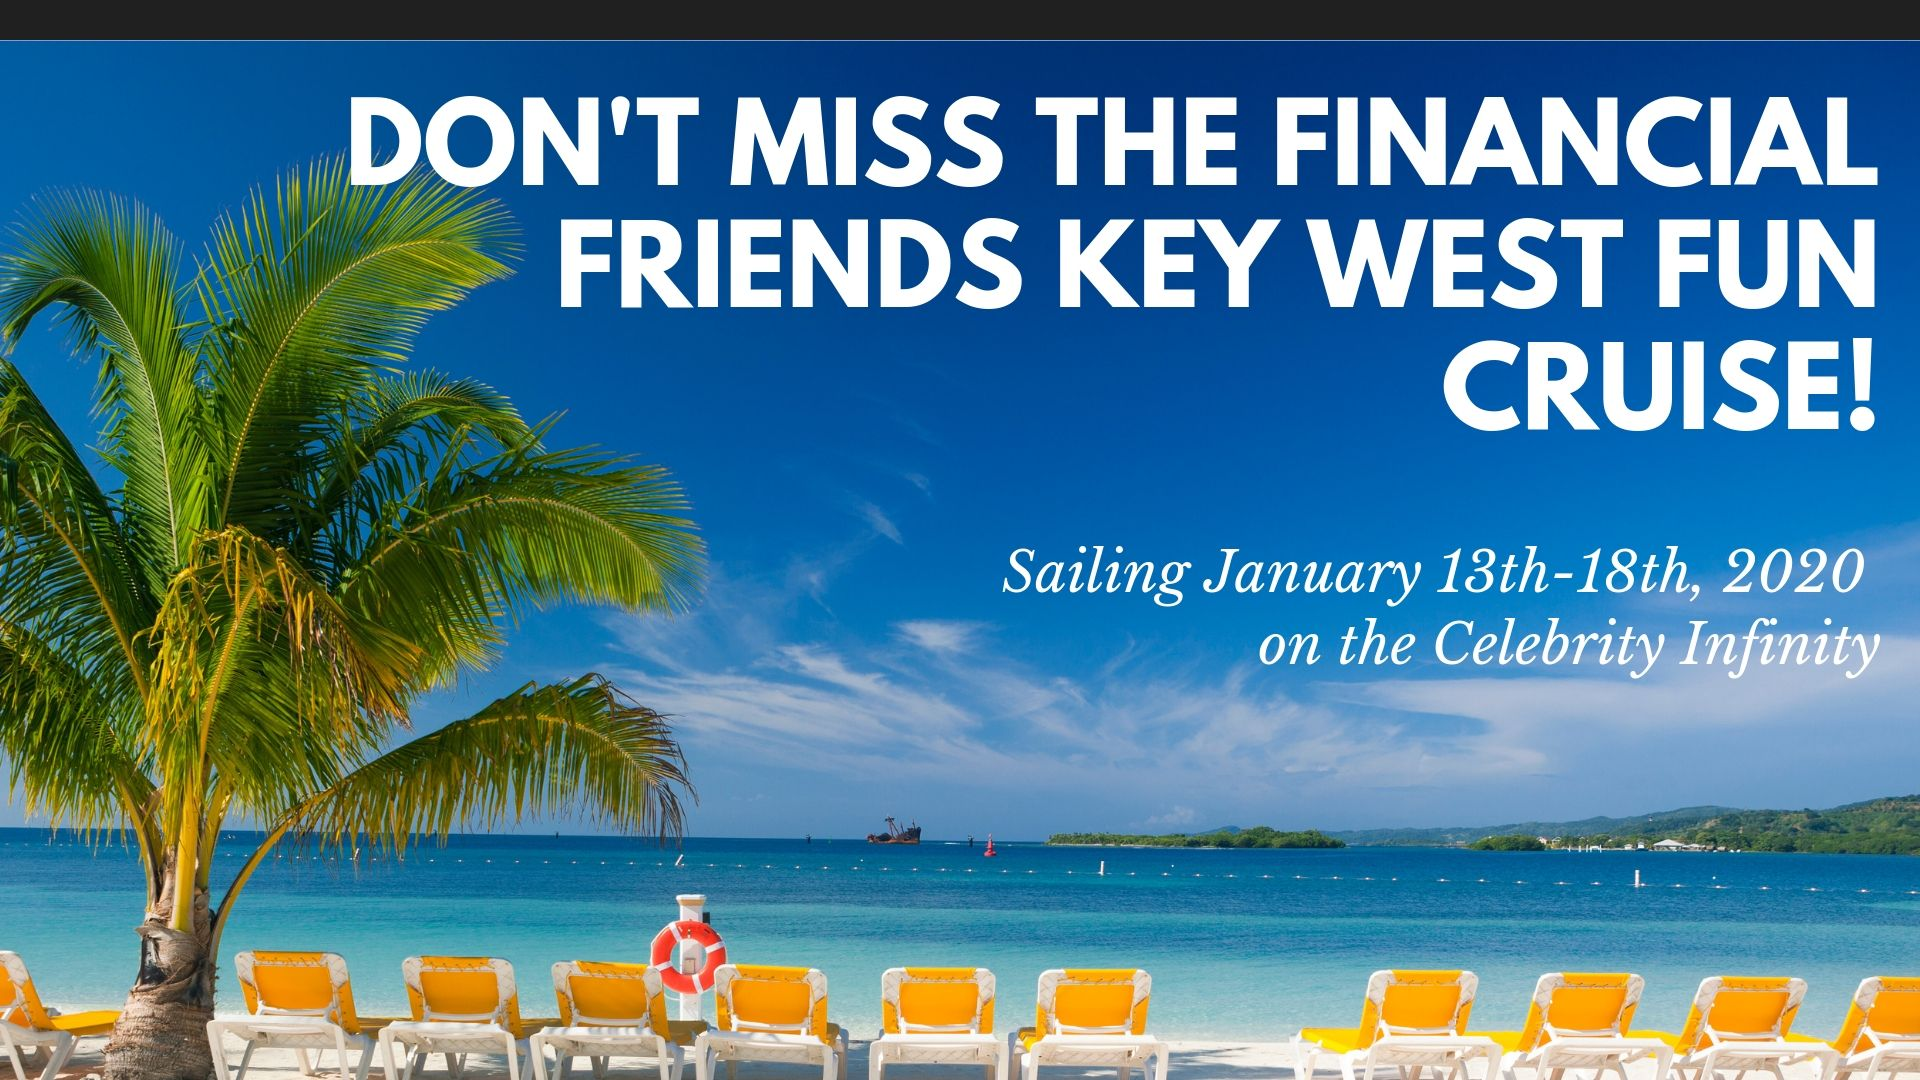 Don't Miss The Financial Friends Key West Fun Cruise!